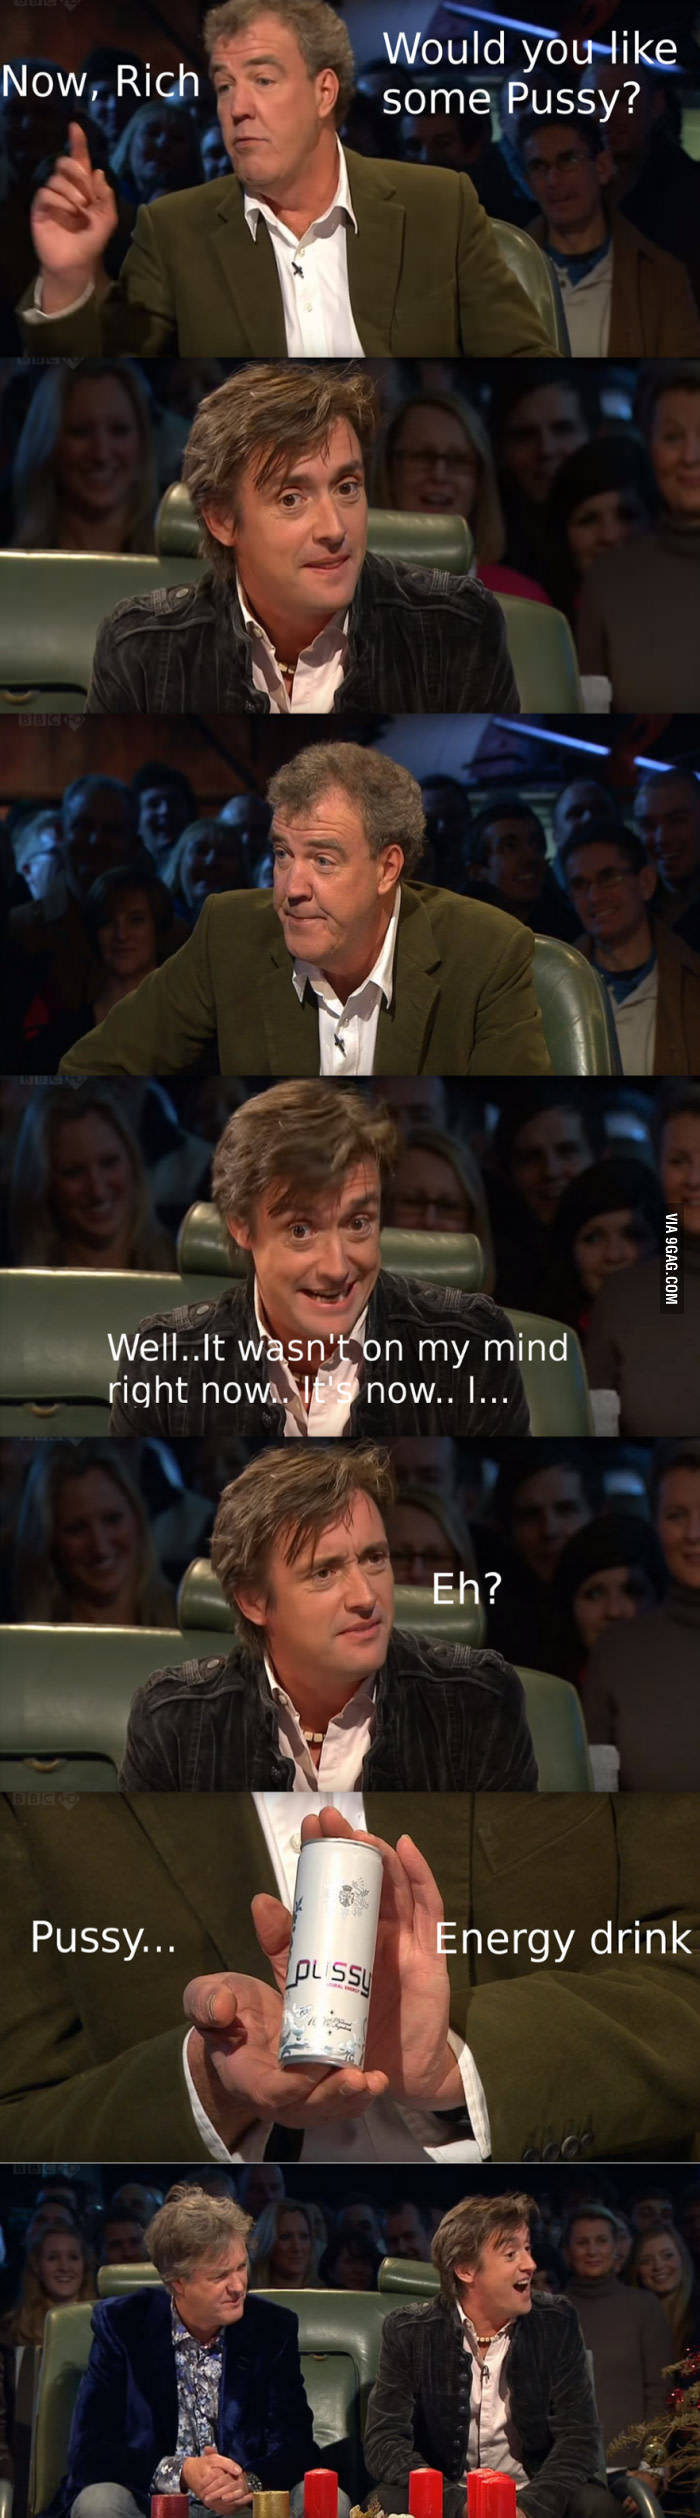 clarkson at his best